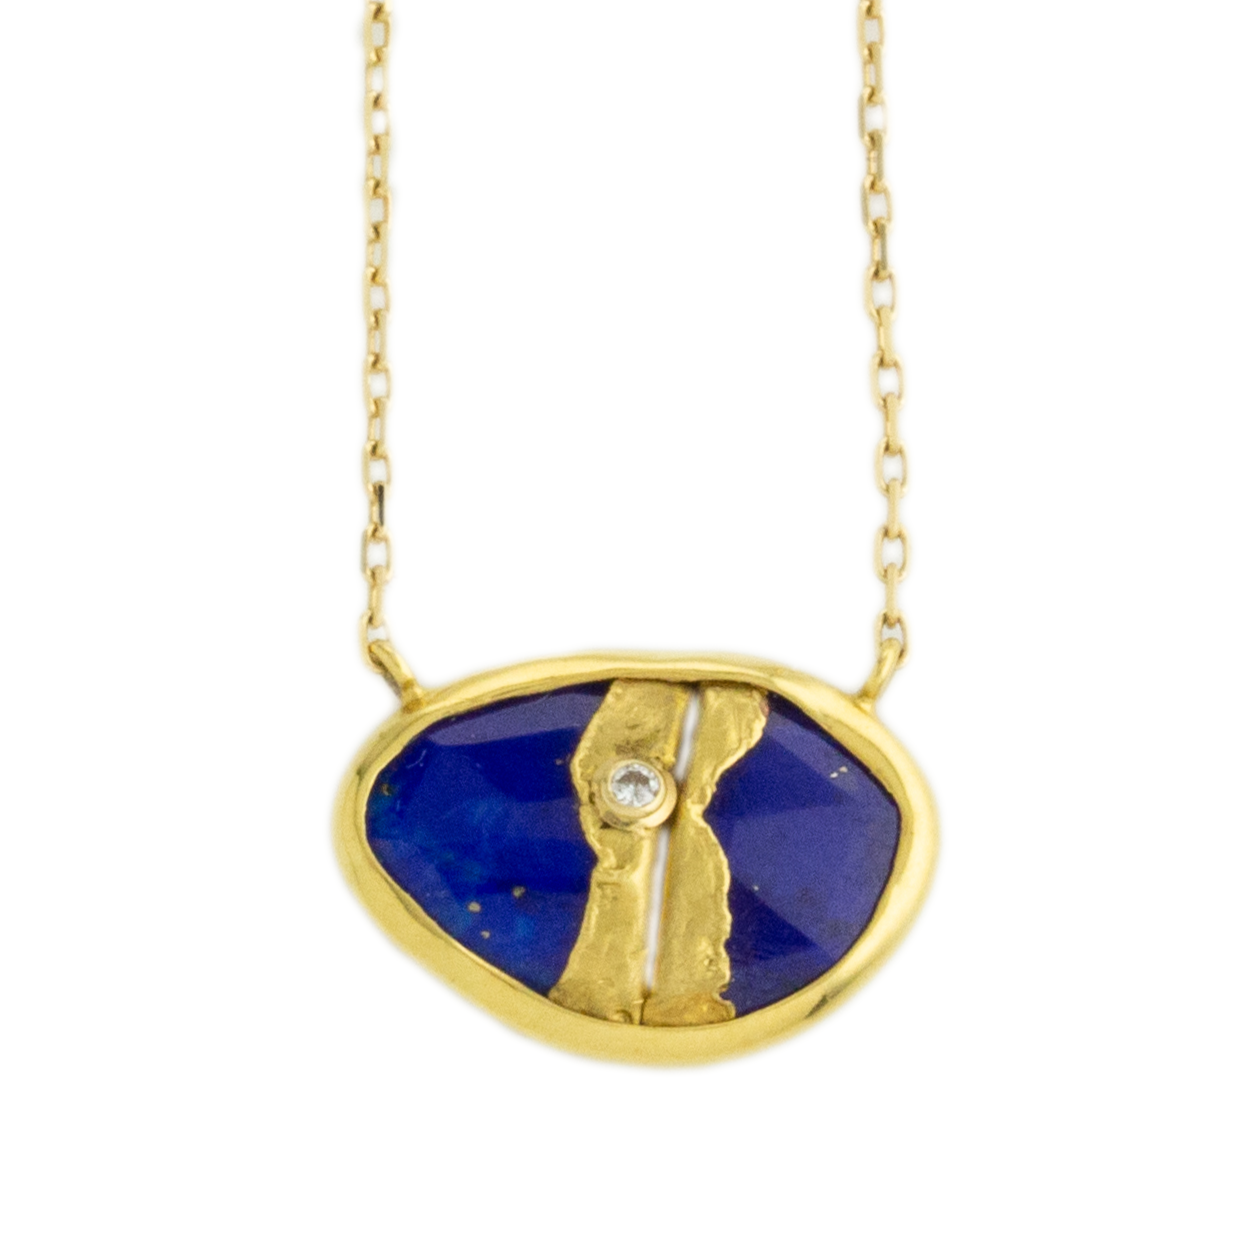 22K Golden Joinery Lapis & Diamond Necklace